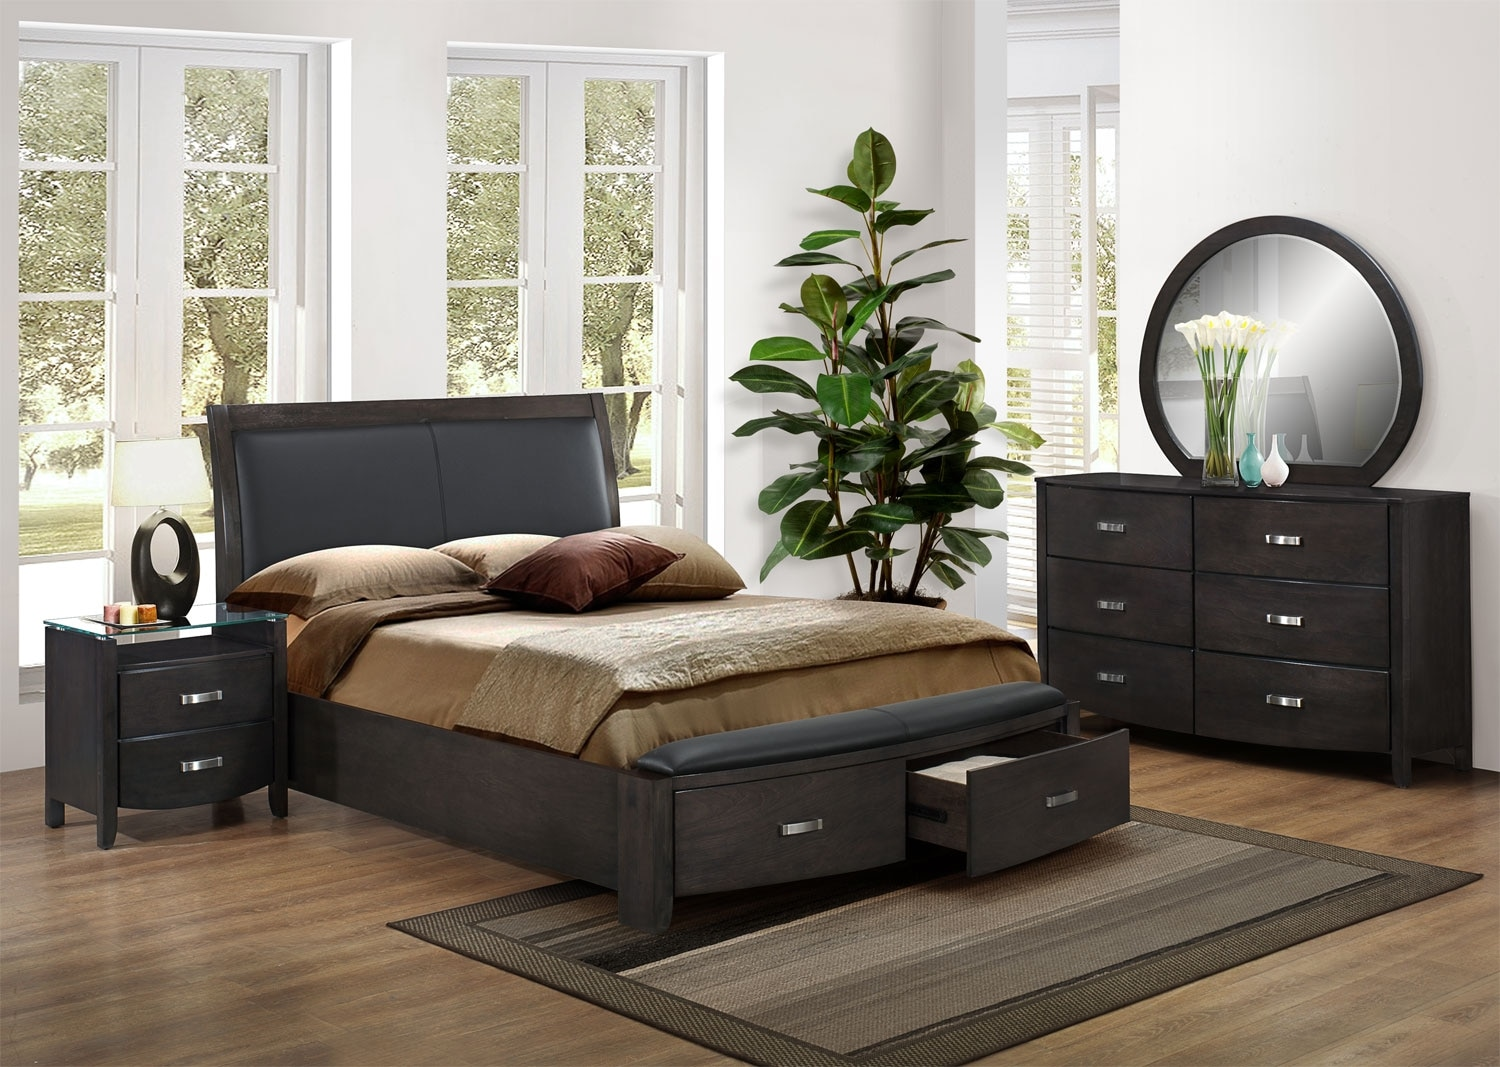 Cinema 5-Piece Queen Bedroom Set - Charcoal